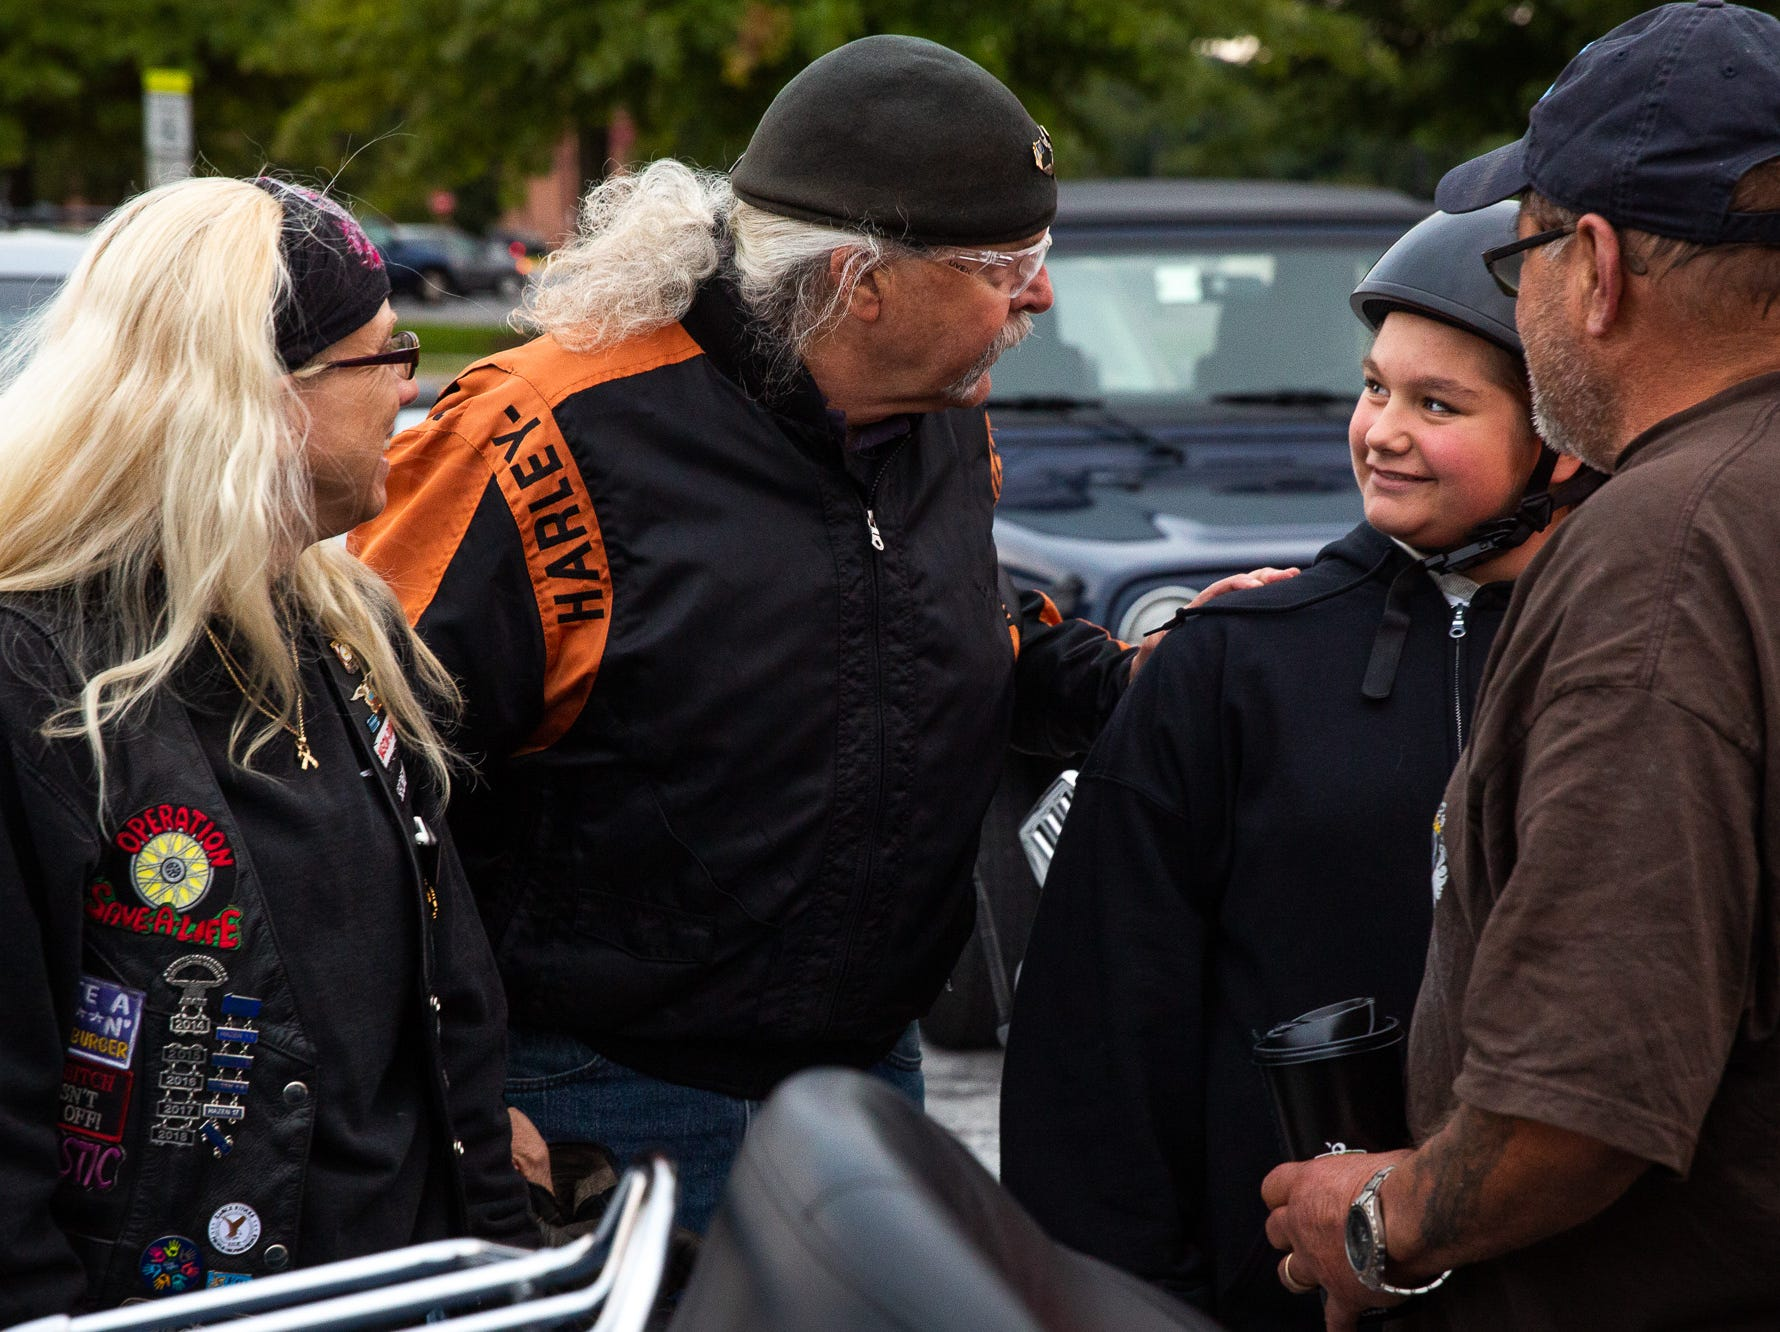 Aireana Mummerth, a 6th grader, is embraced by bikers after arriving to school at Emory H. Markle Intermediate escorted by dozens of members of the Alliance of Bikers Aimed Toward Education biker group, Friday, Oct. 5, 2018, in Penn Township.